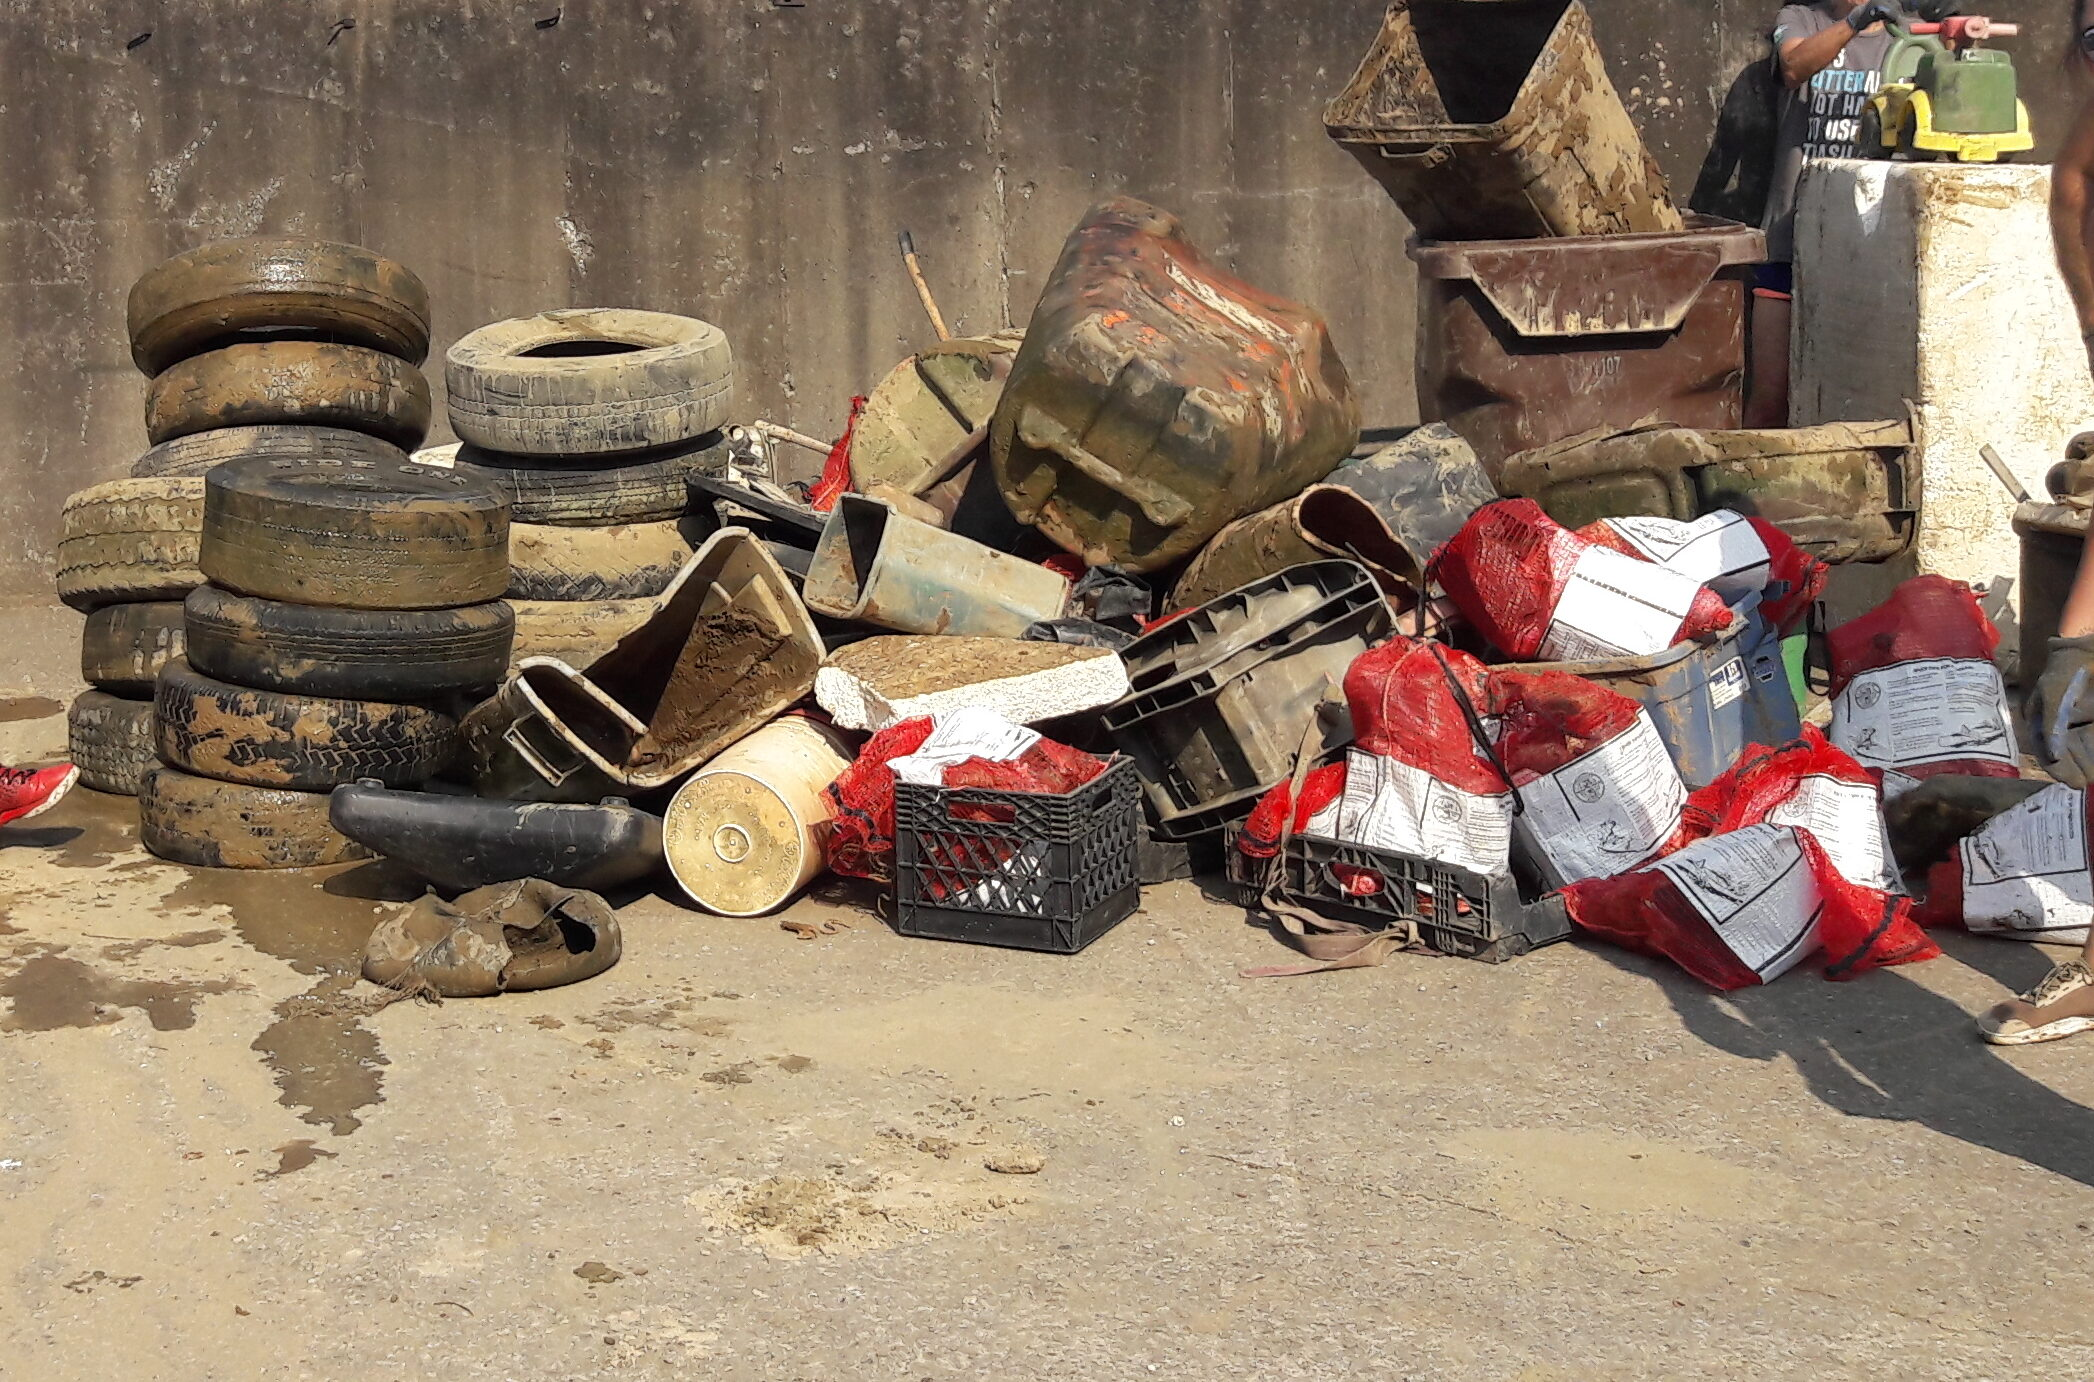 A pile of tires, trash bins, buckets and bags of trash